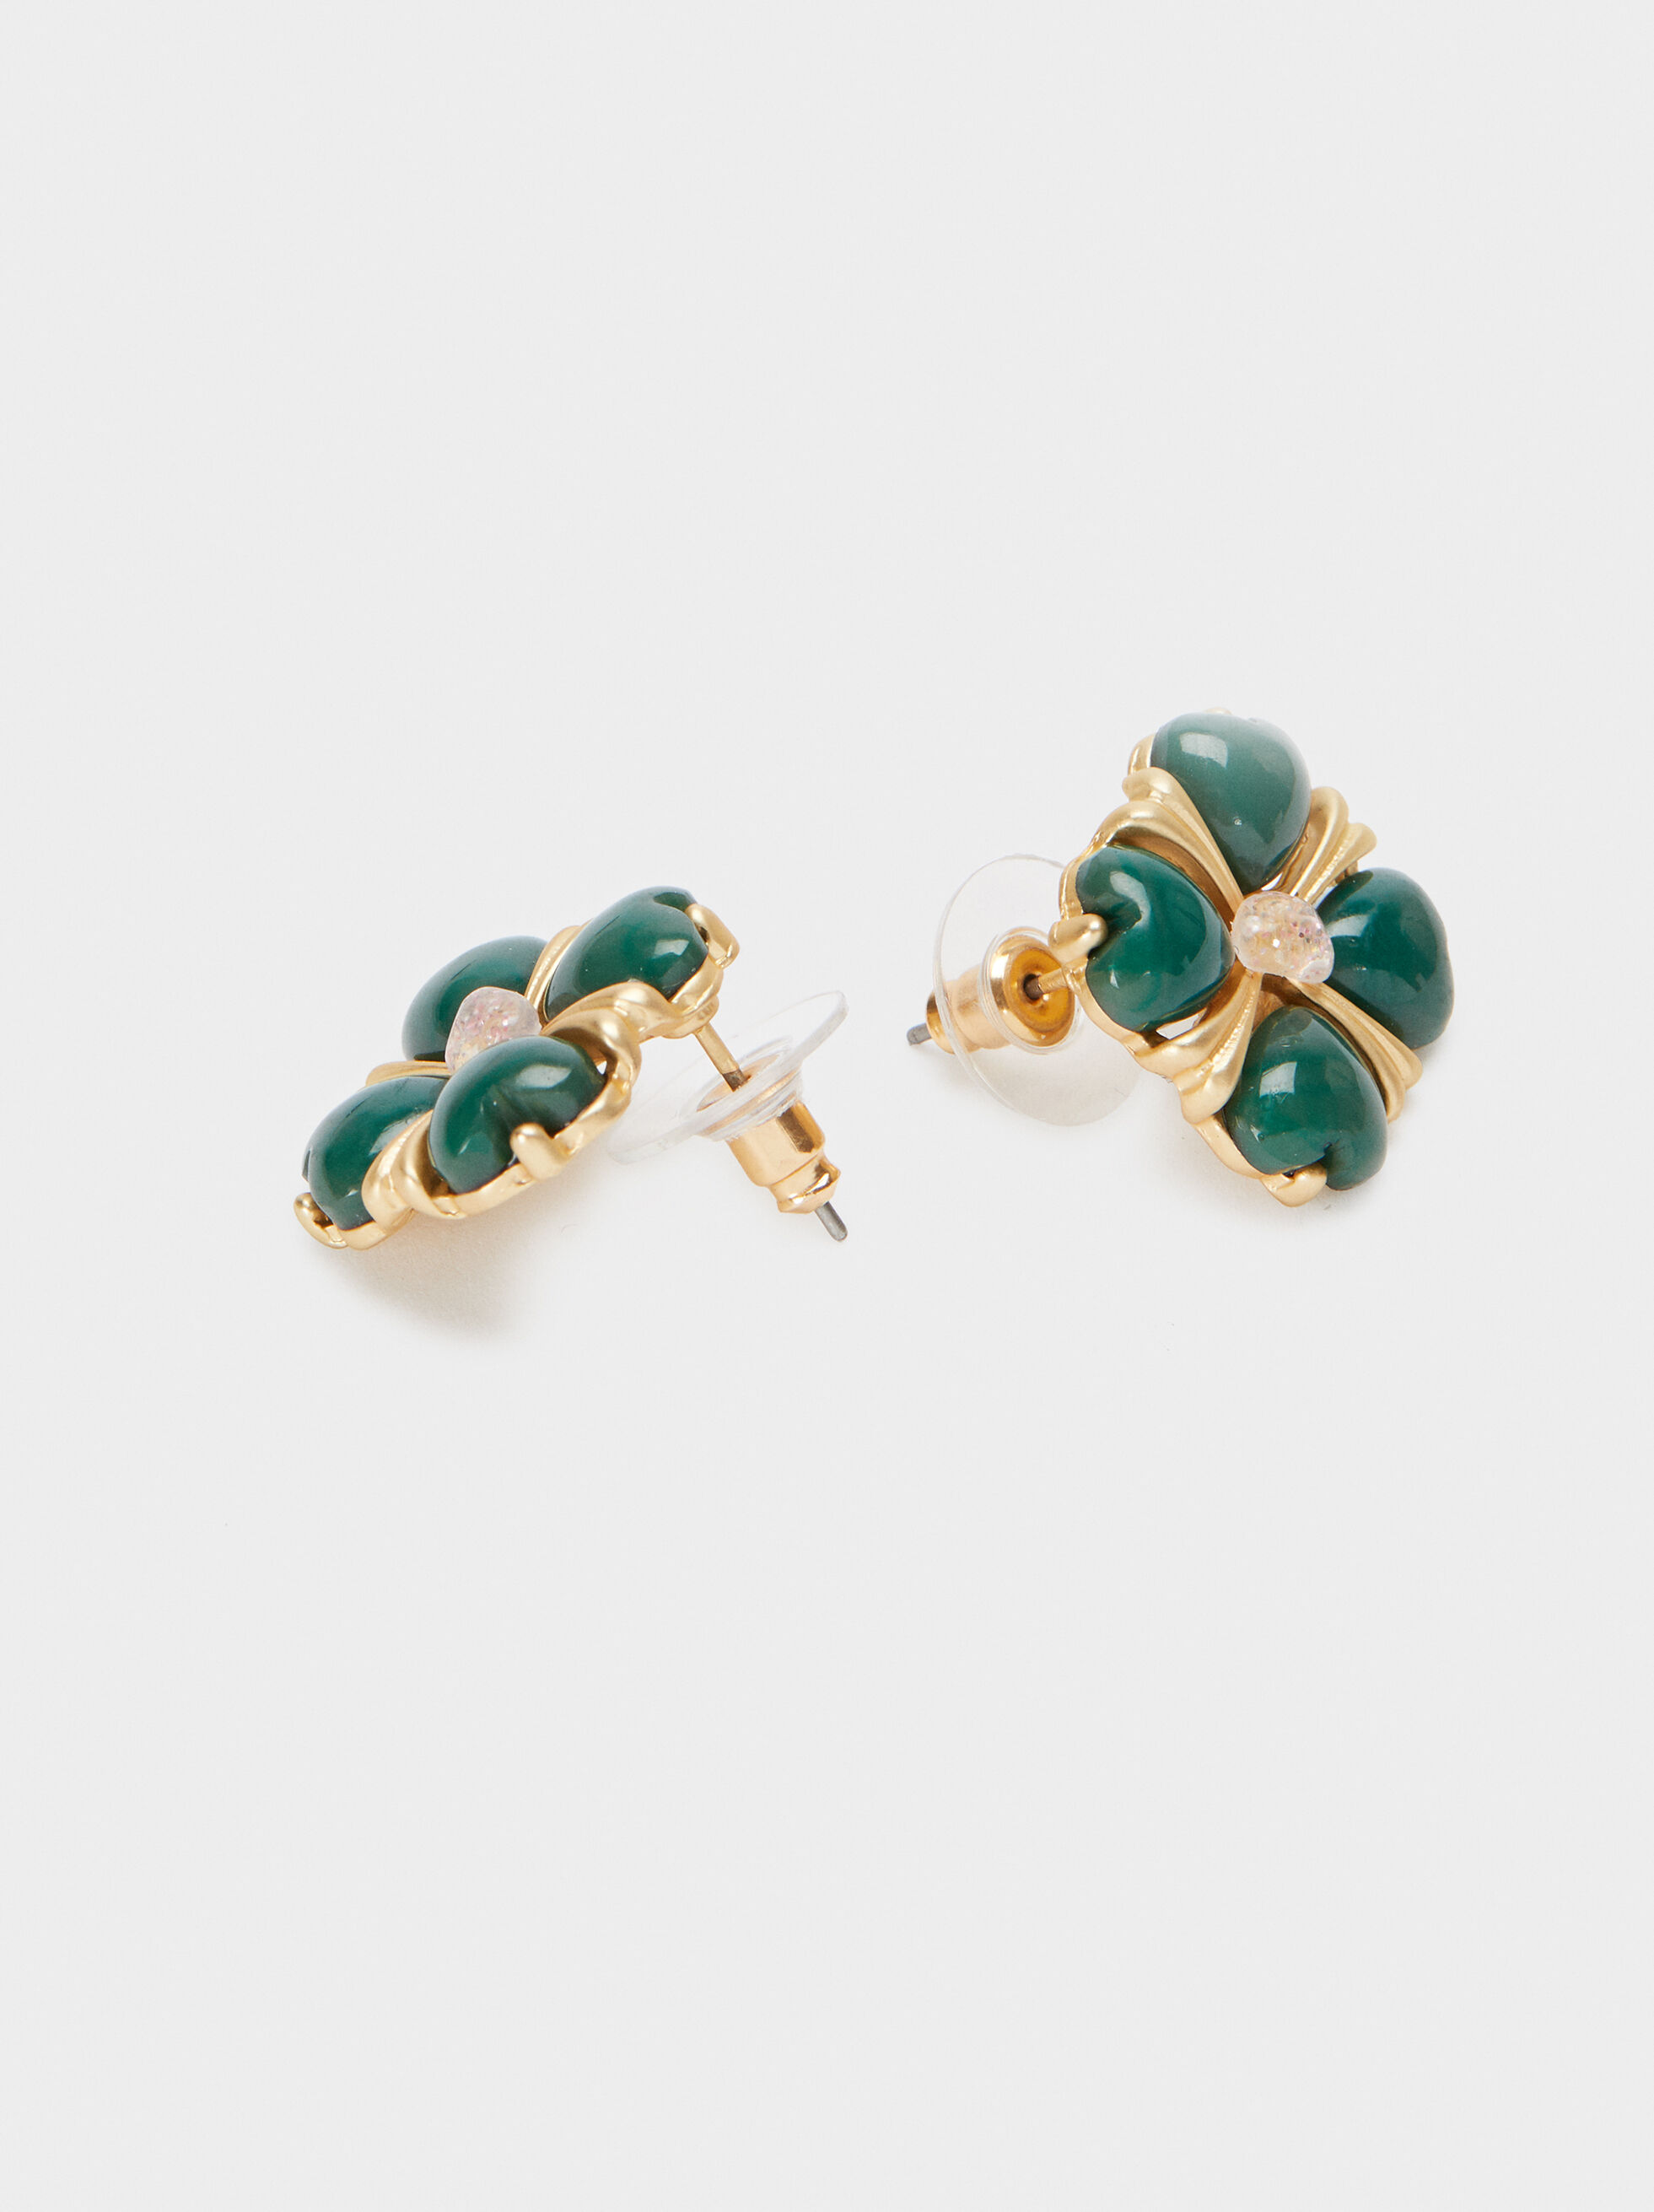 Small Gold Earrings With Clover, Multicolor, hi-res